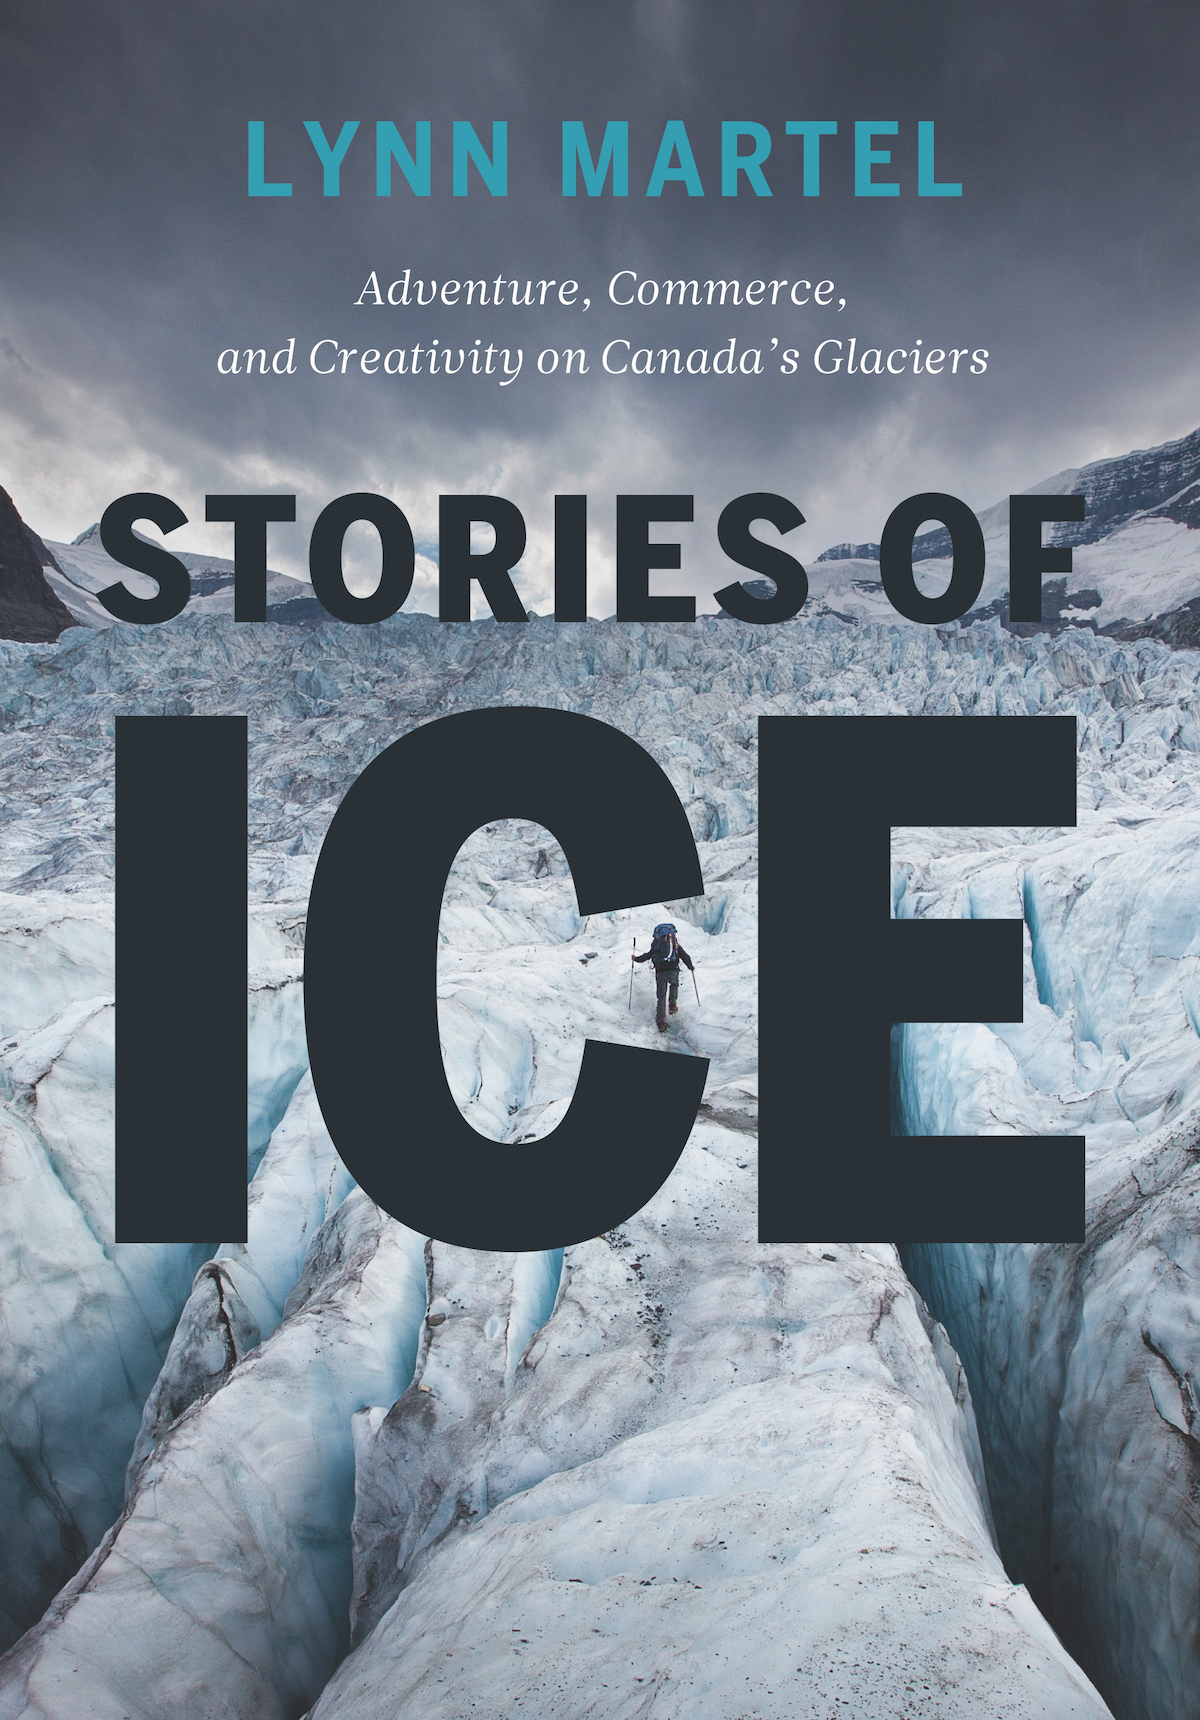 Stories of Ice: Adventure, Commerce and Creativity on Canada's Glaciers by Lynn Martel. Rocky Mountain Books, 2020. 336 pages. Hardcover, $40 (CAN). [Image] Courtesy Rocky Mountain Books